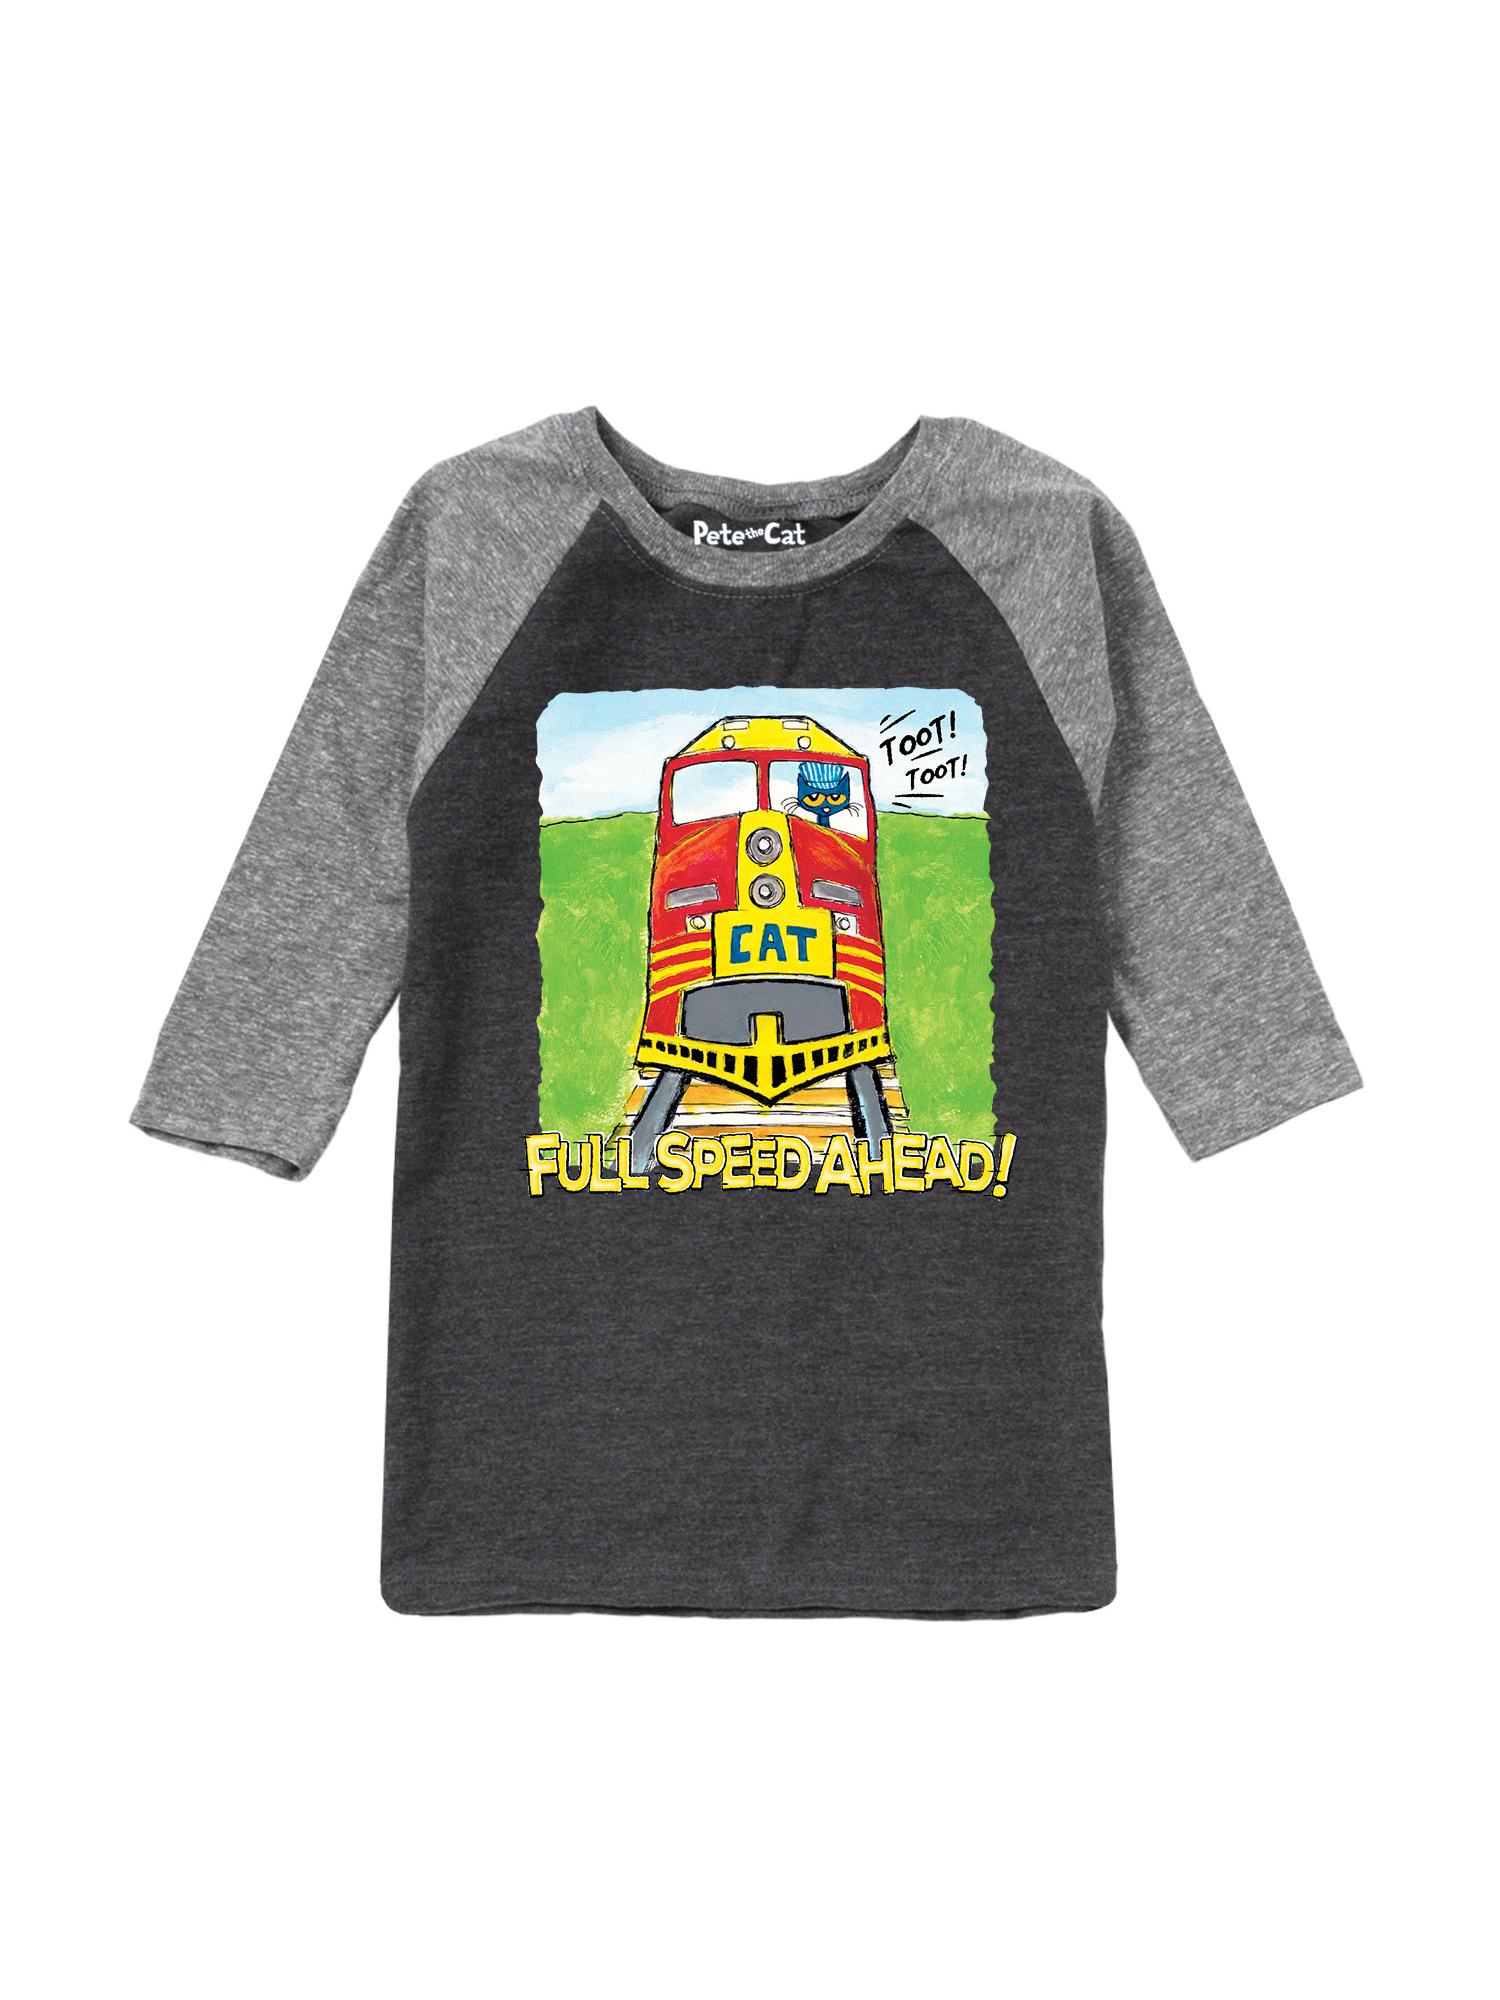 Pete the Cat Keepin It Groovy Toddler Raglan